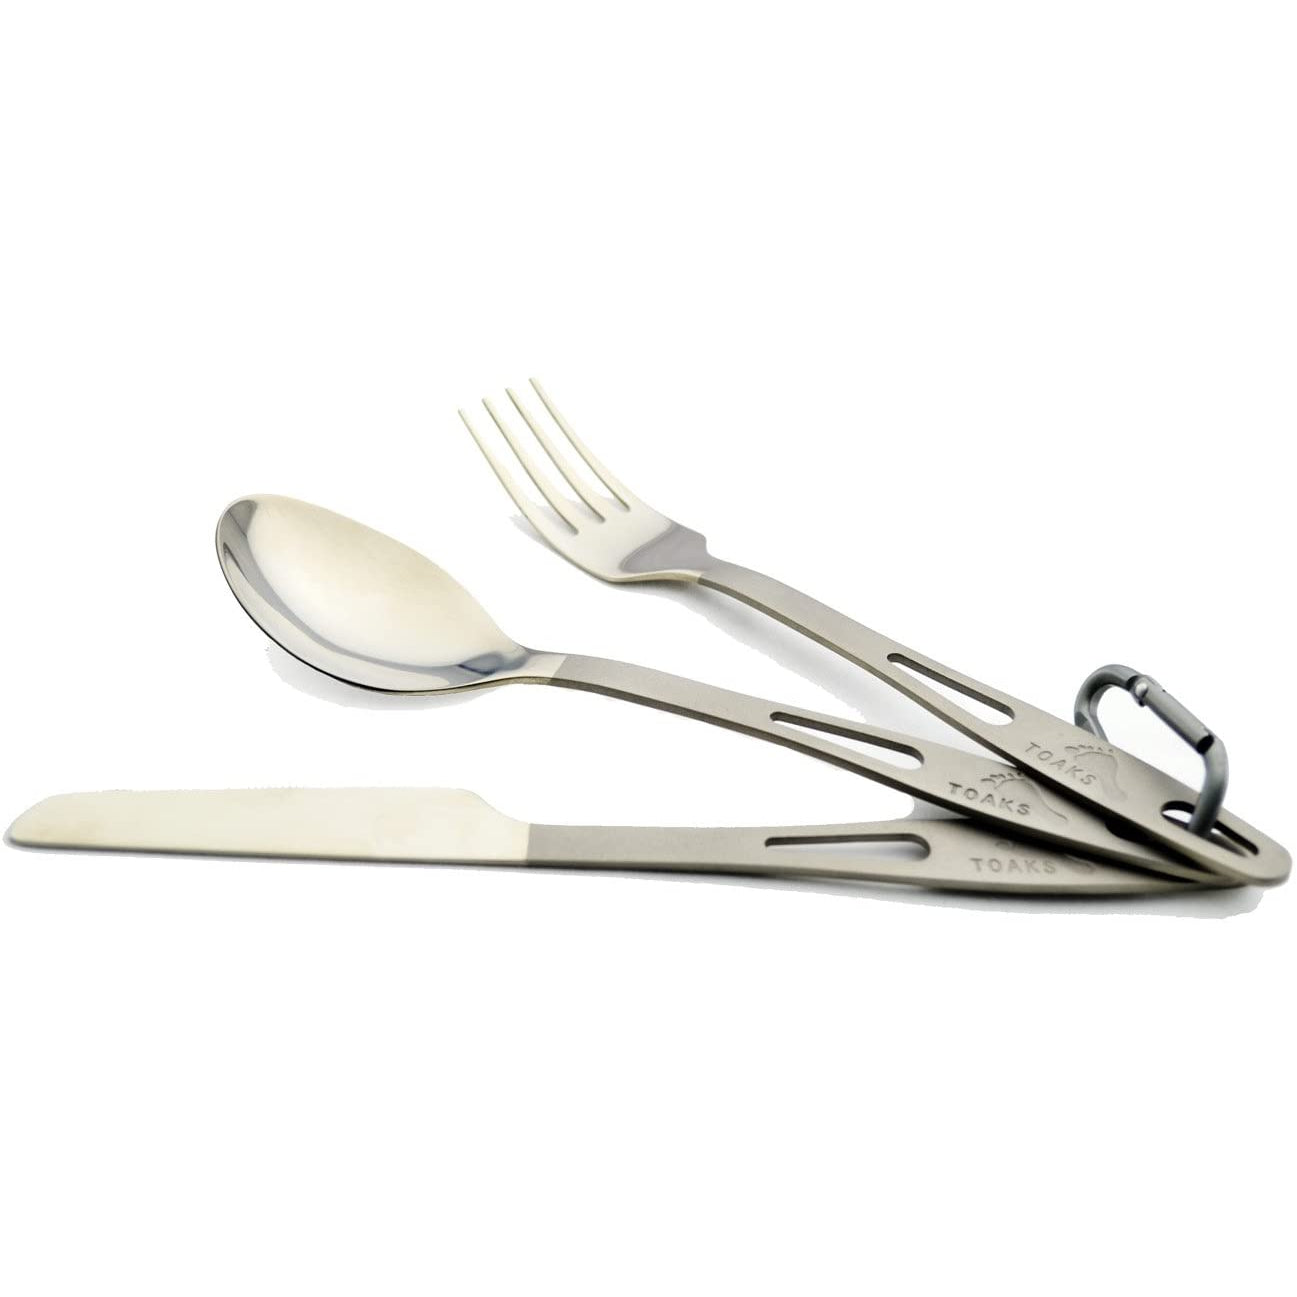 TOAKS Titanium 3-Pieces Cutlery Set